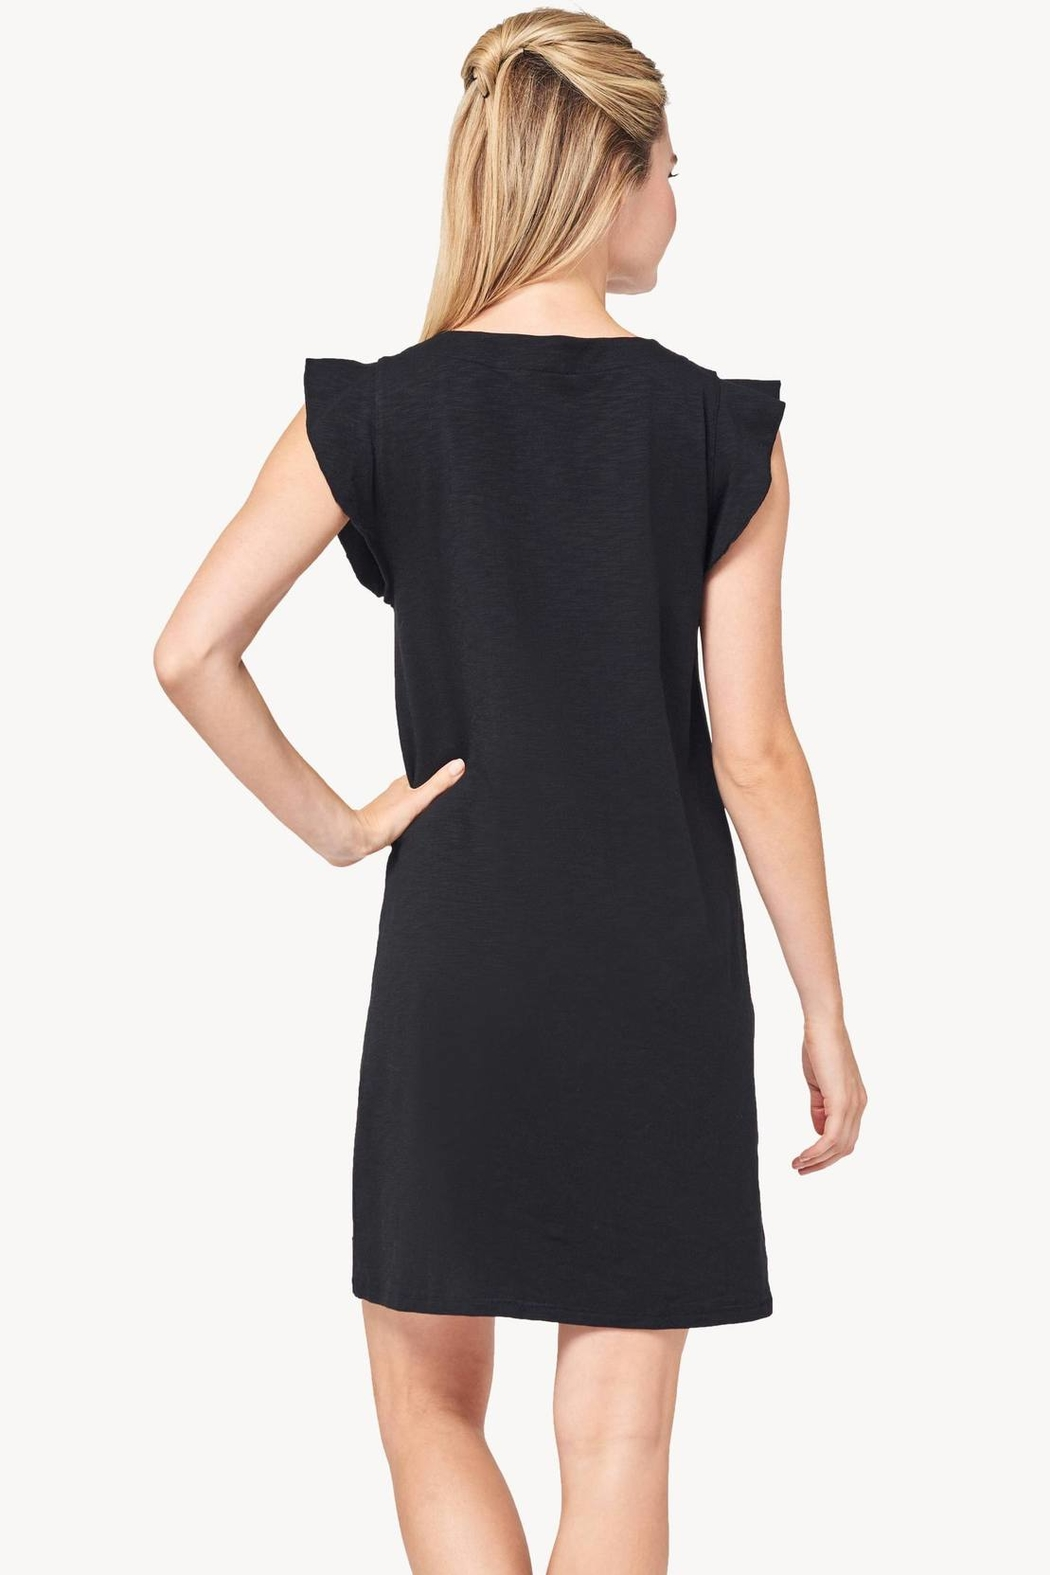 Lilla P Tie-Front Dress - Front Full Image